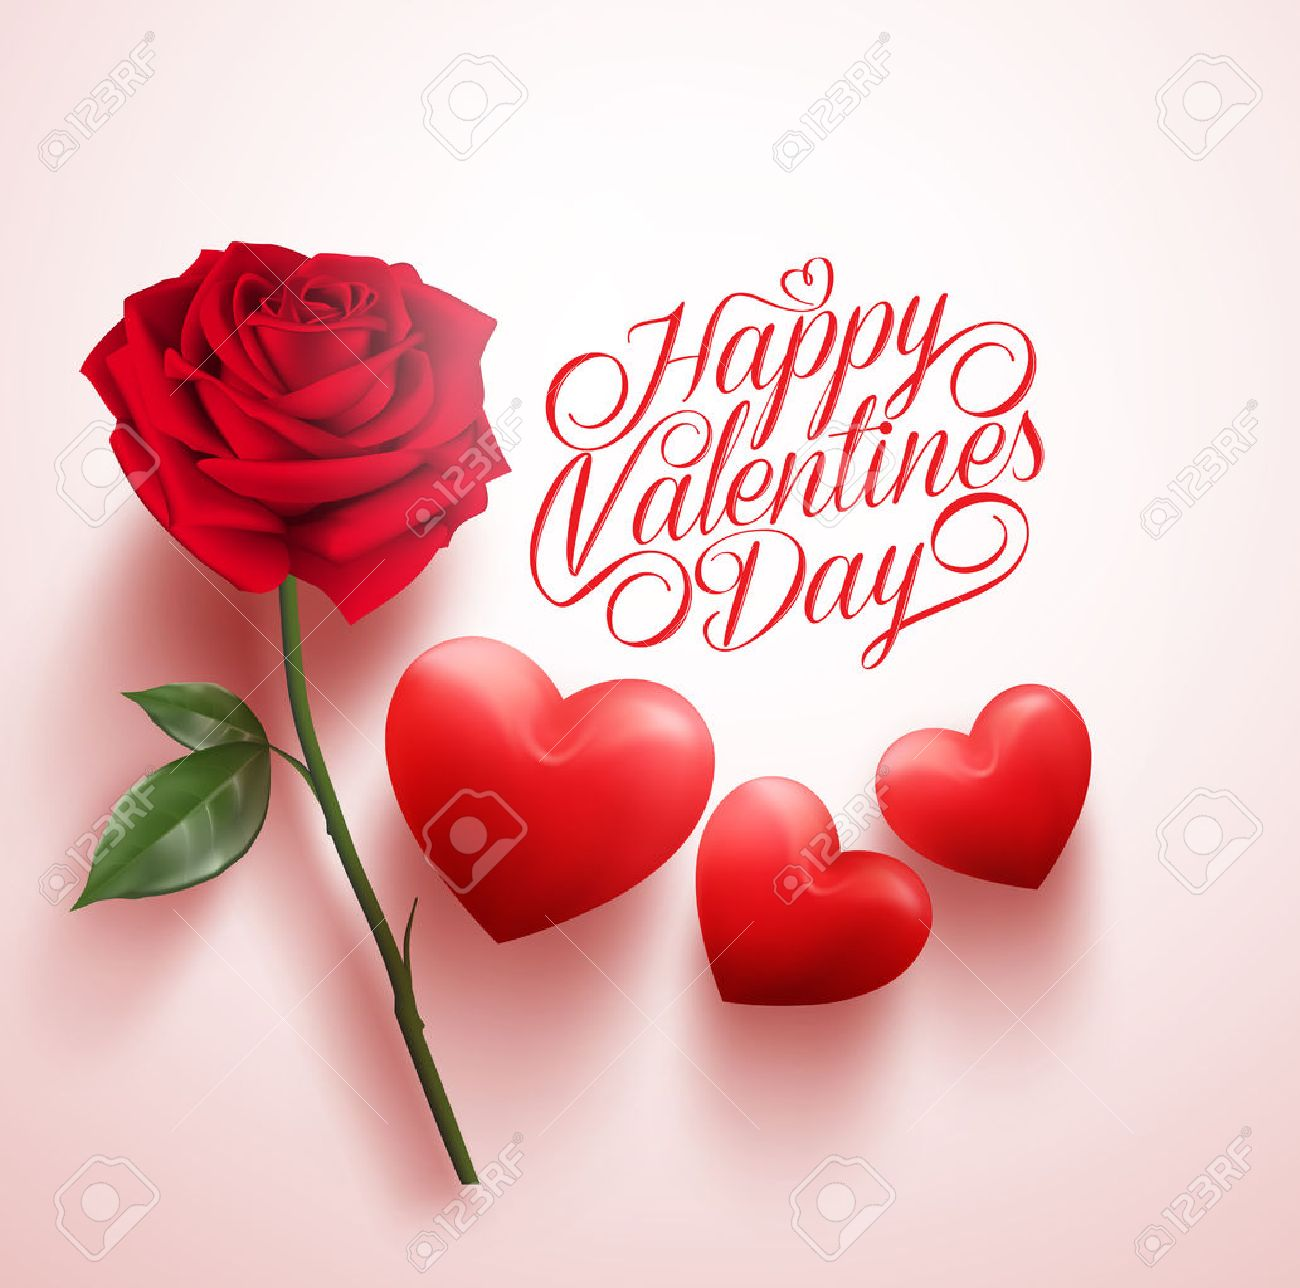 3D Realistic Red Rose And Hearts With Happy Valentines Day Message – Happy Valentines Card Messages